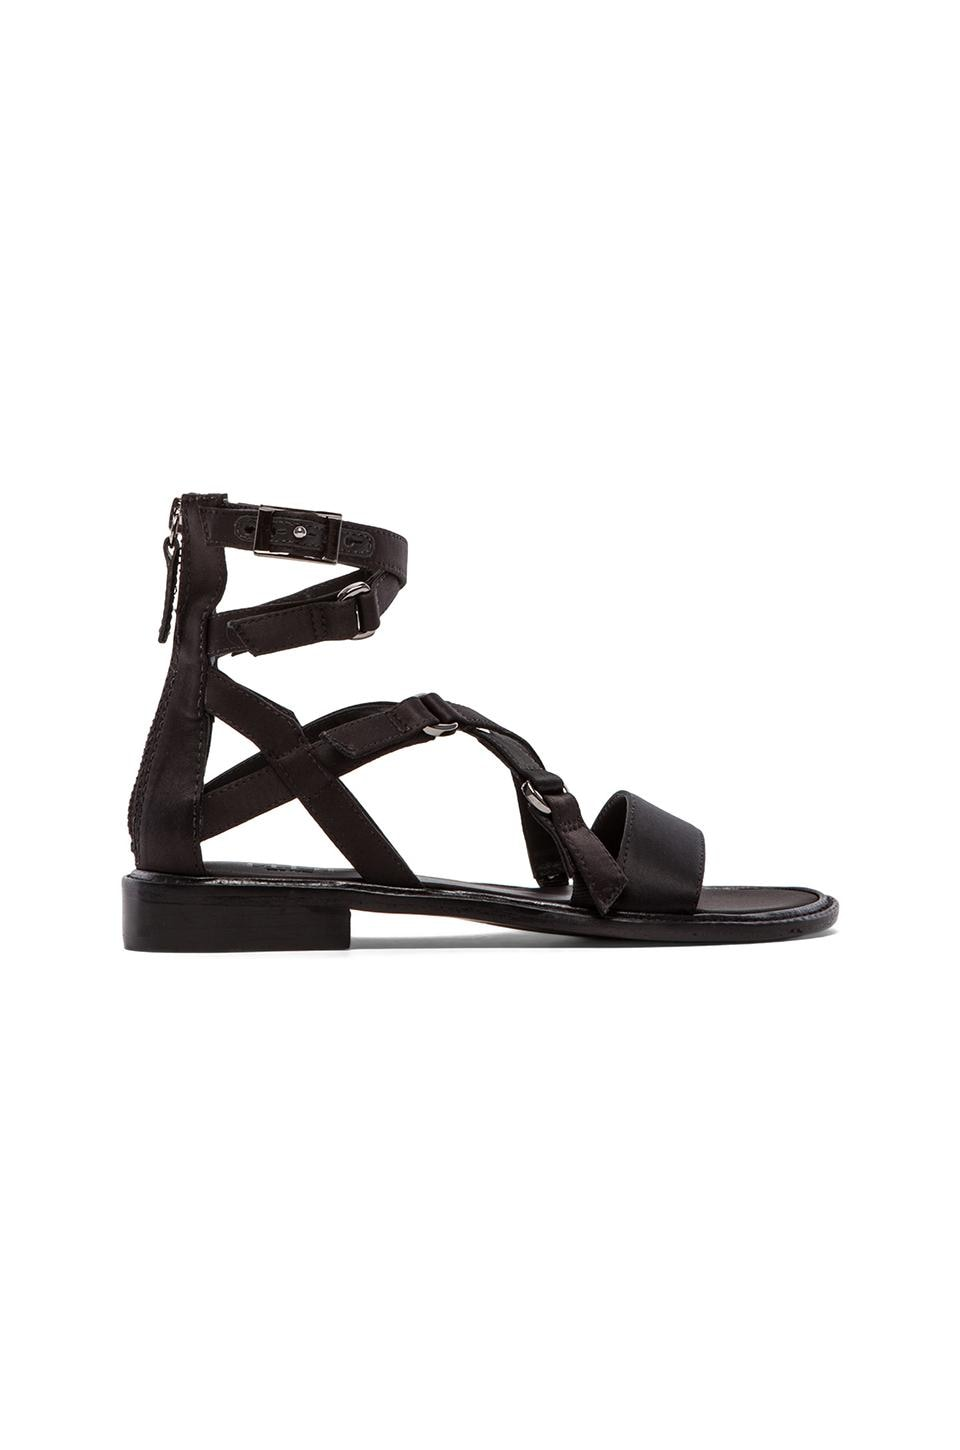 Tibi Imogen Sandal in Black